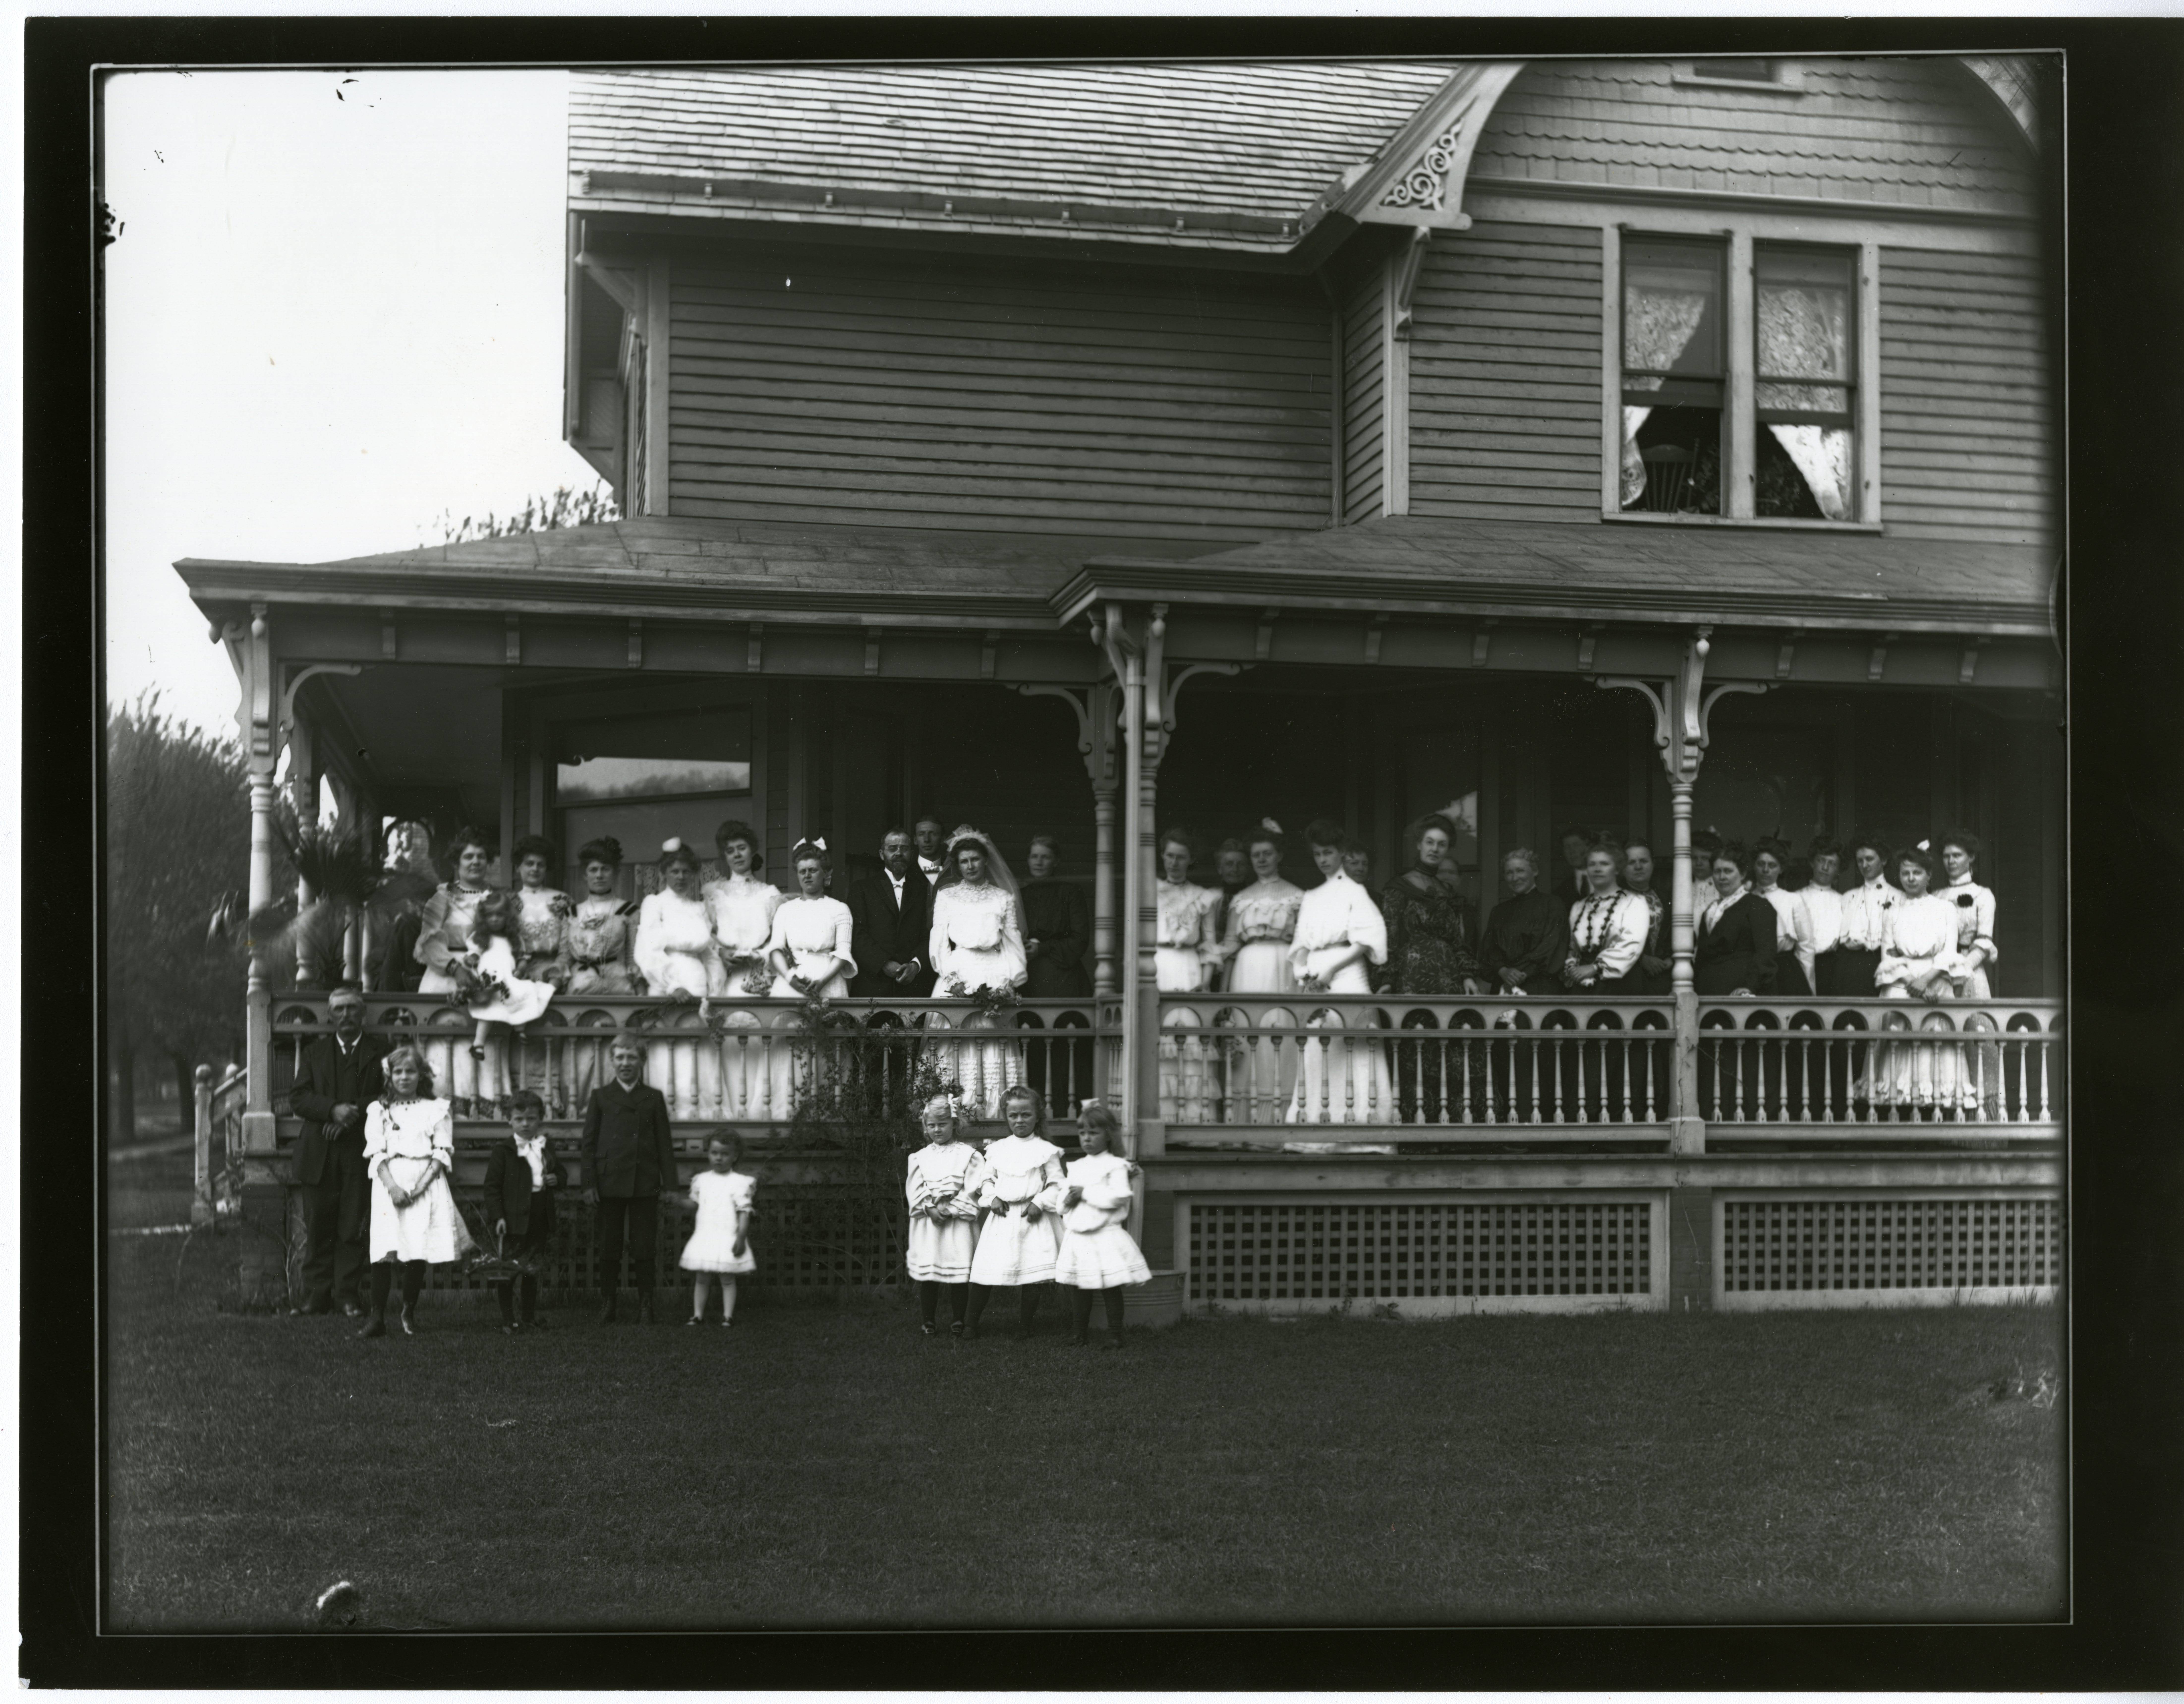 Wedding party poses for photo outside of house.